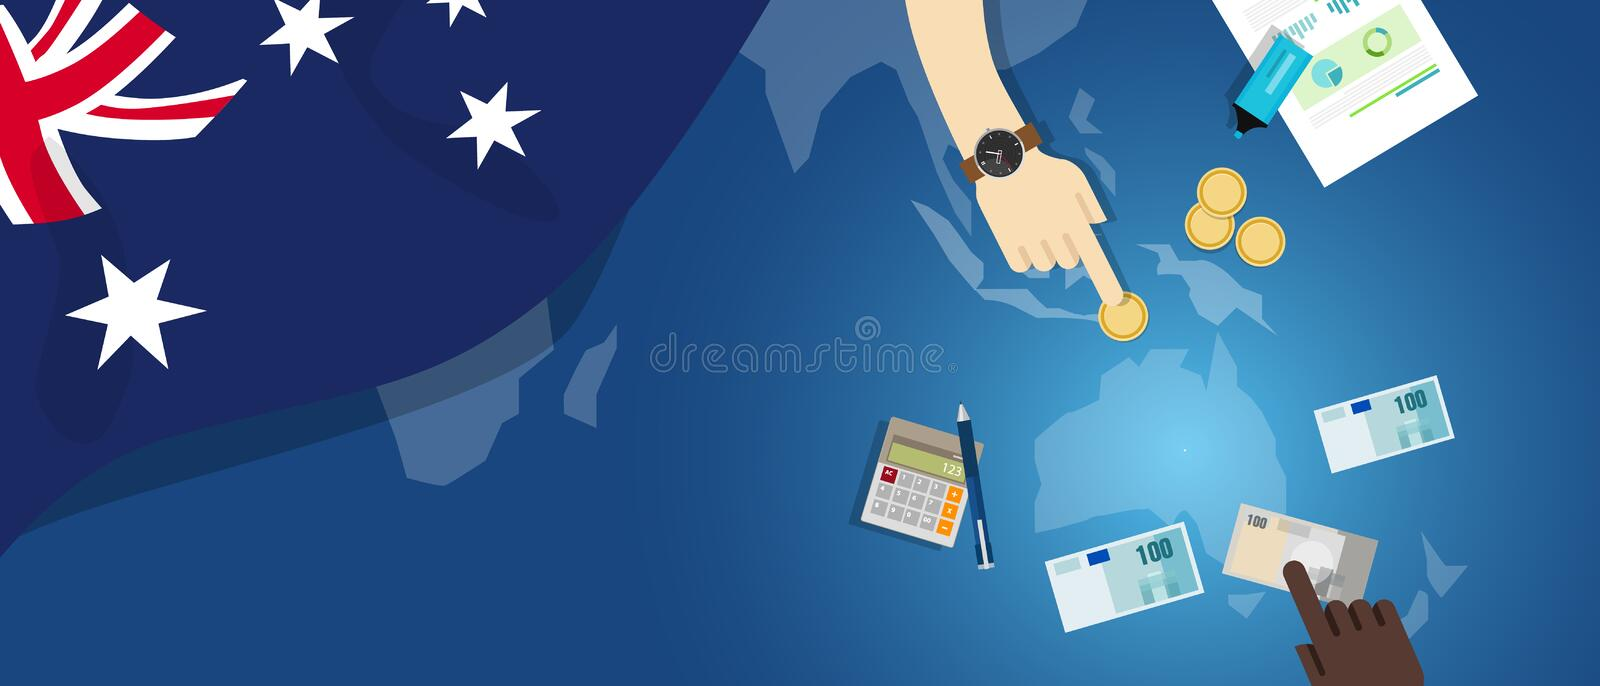 Australia economy fiscal money trade concept illustration of financial banking budget with flag map and currency. Australia Dutch economy fiscal money trade stock illustration